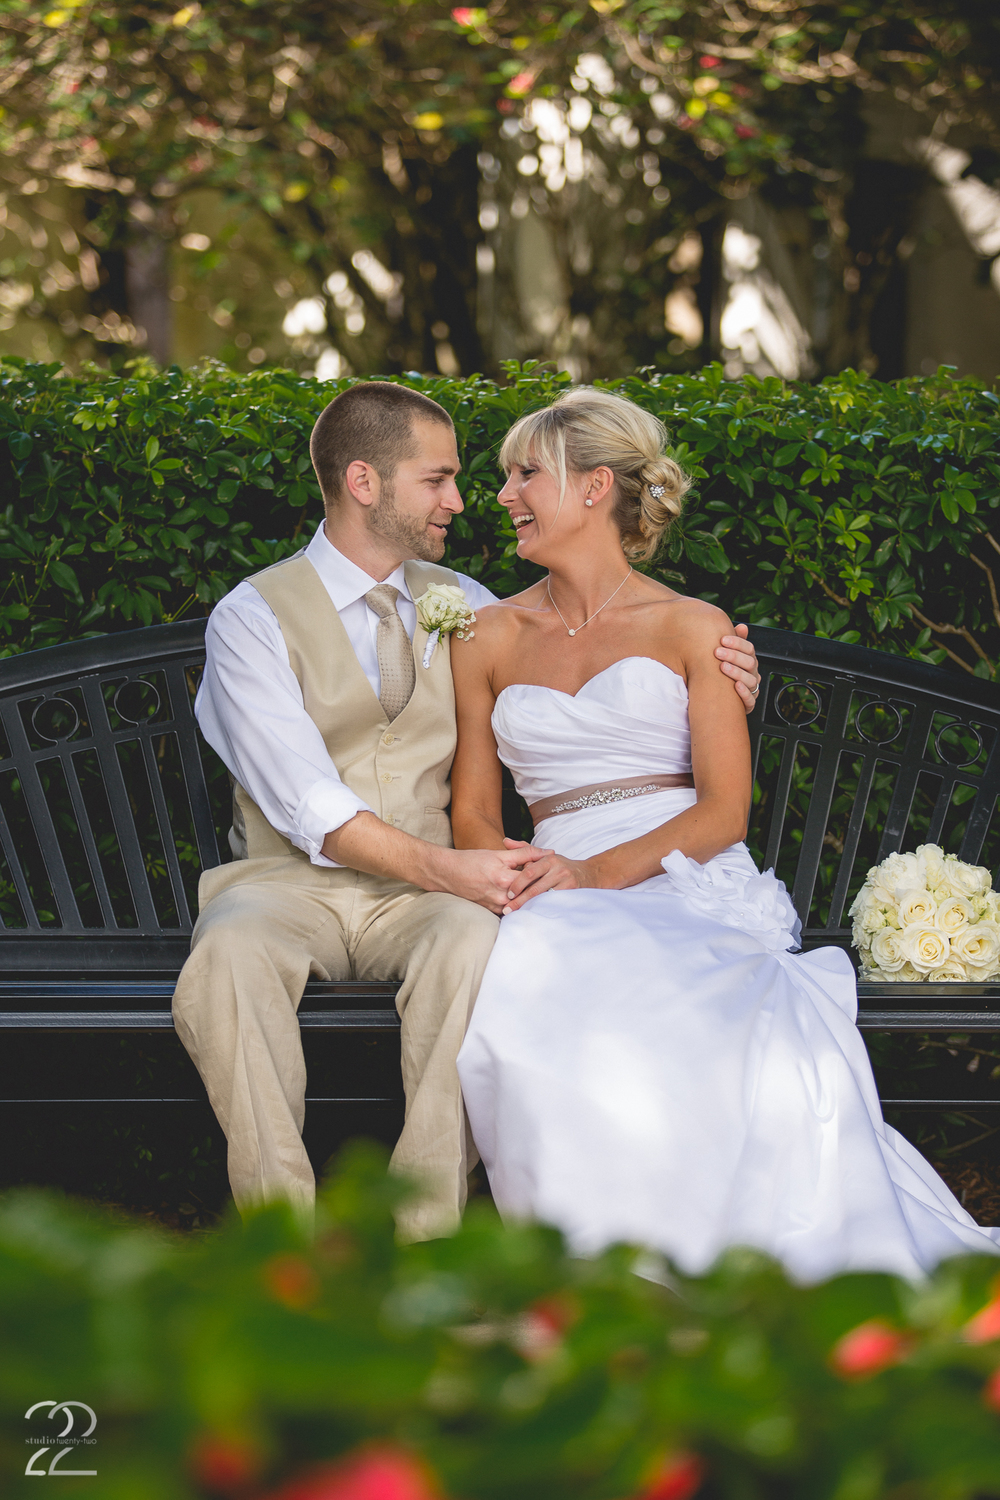 Outdoor Wedding Photos Florida